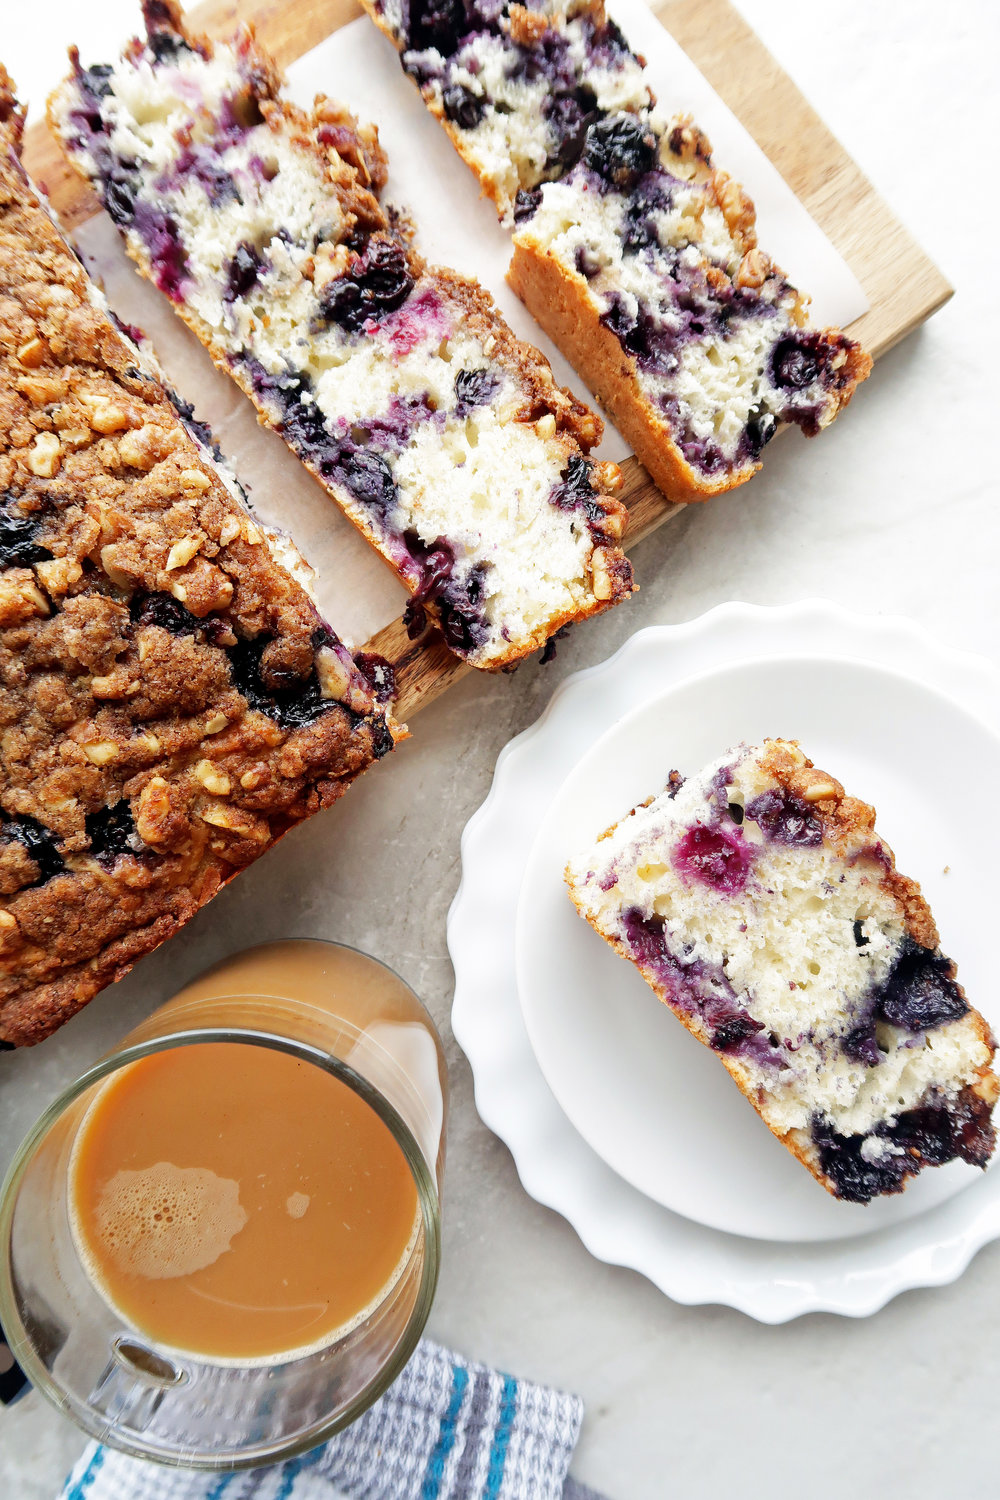 Blueberry coffee cake with crumble on a wooden board and a slice on a white plate.